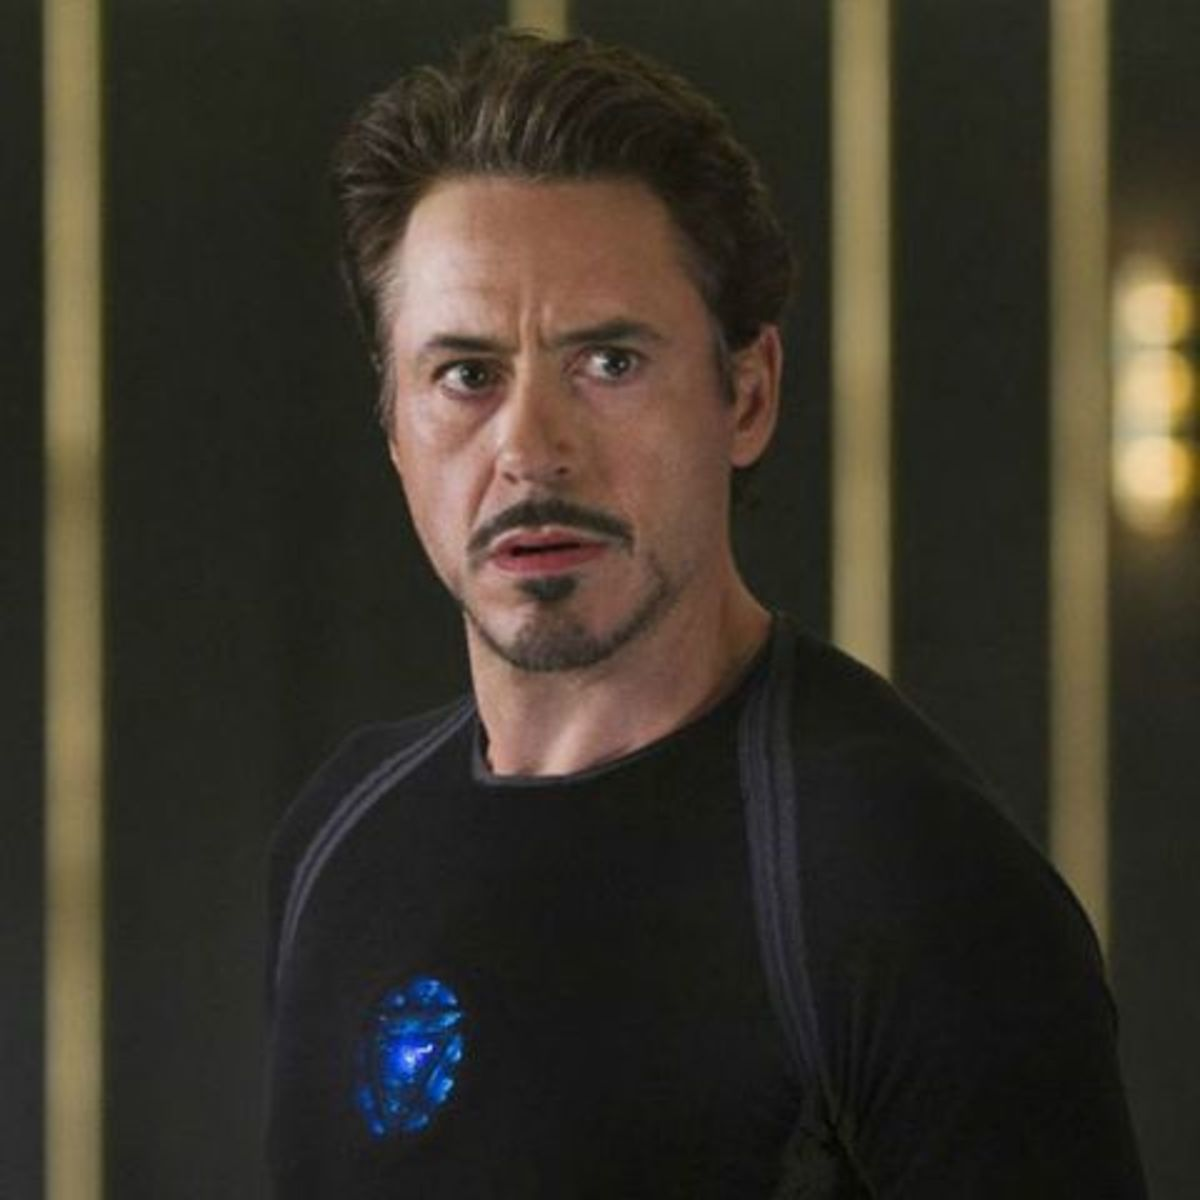 Courtesy of Marvel Studios.  Tony Stark is the epitome of the cultural shift in how we see superheroes.  No super strength without his suit, handicapped by a heart  issue, and still brazenly confident.